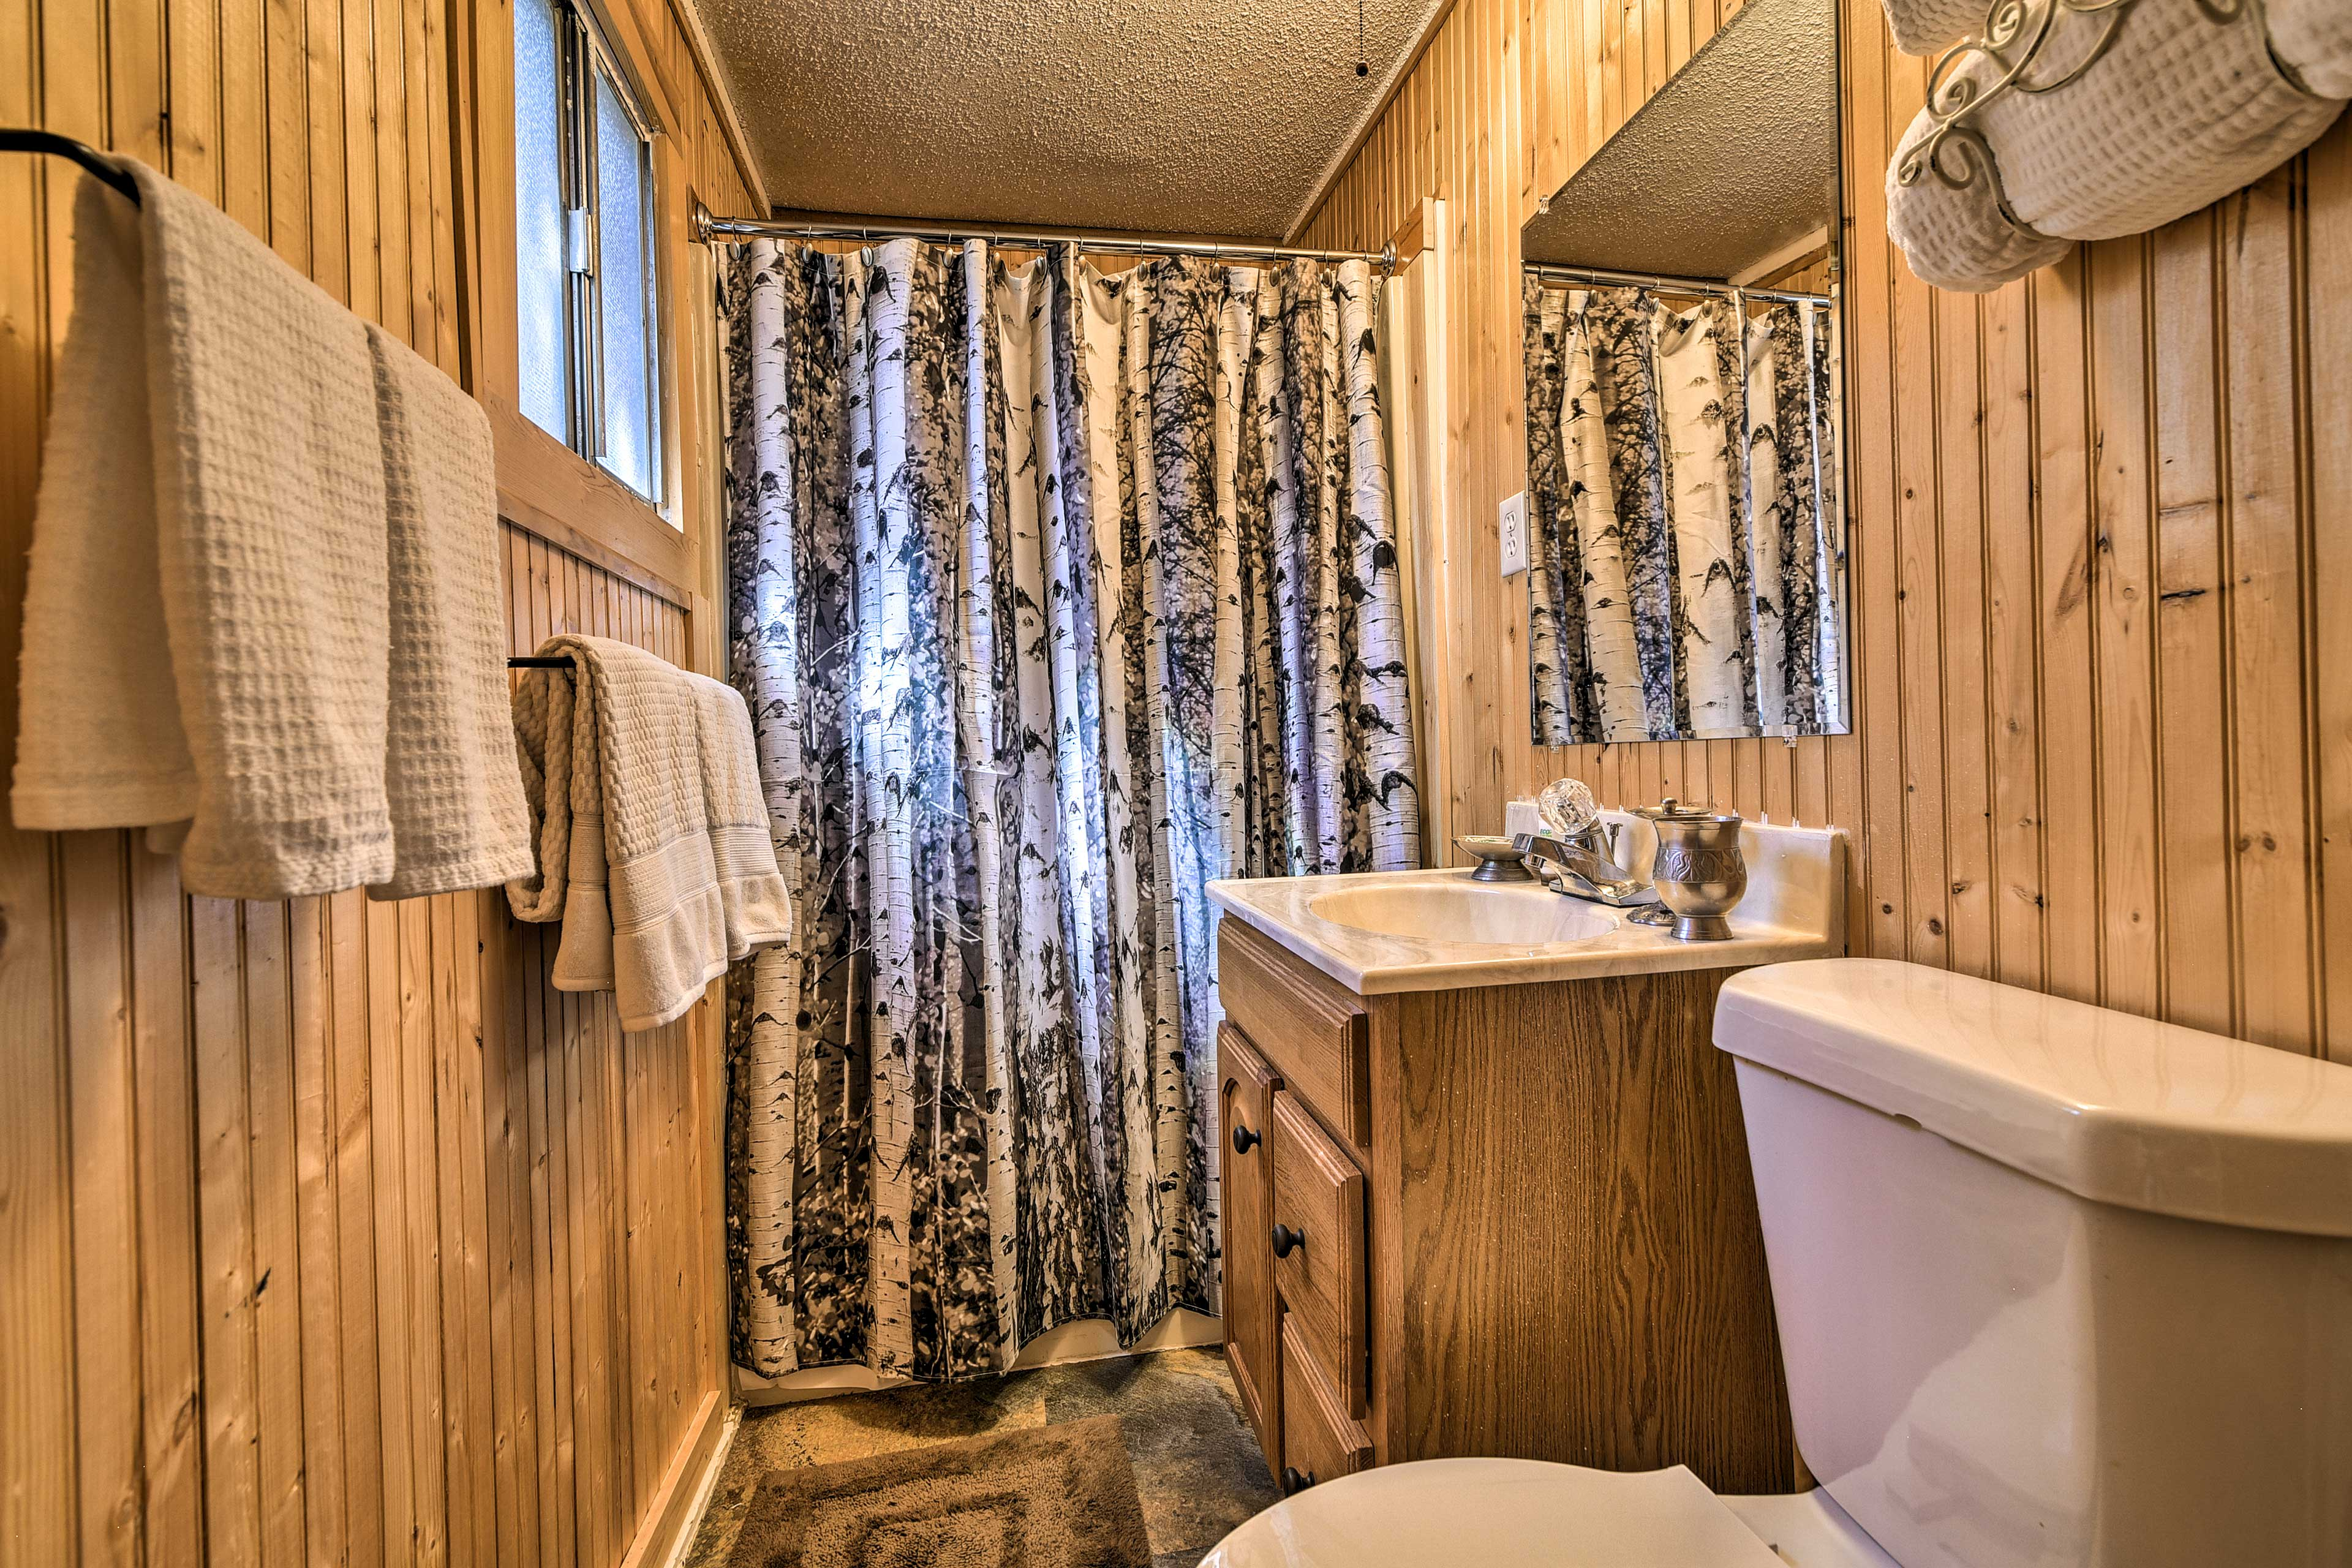 The Aspen tree shower curtain matches outside perfectly!